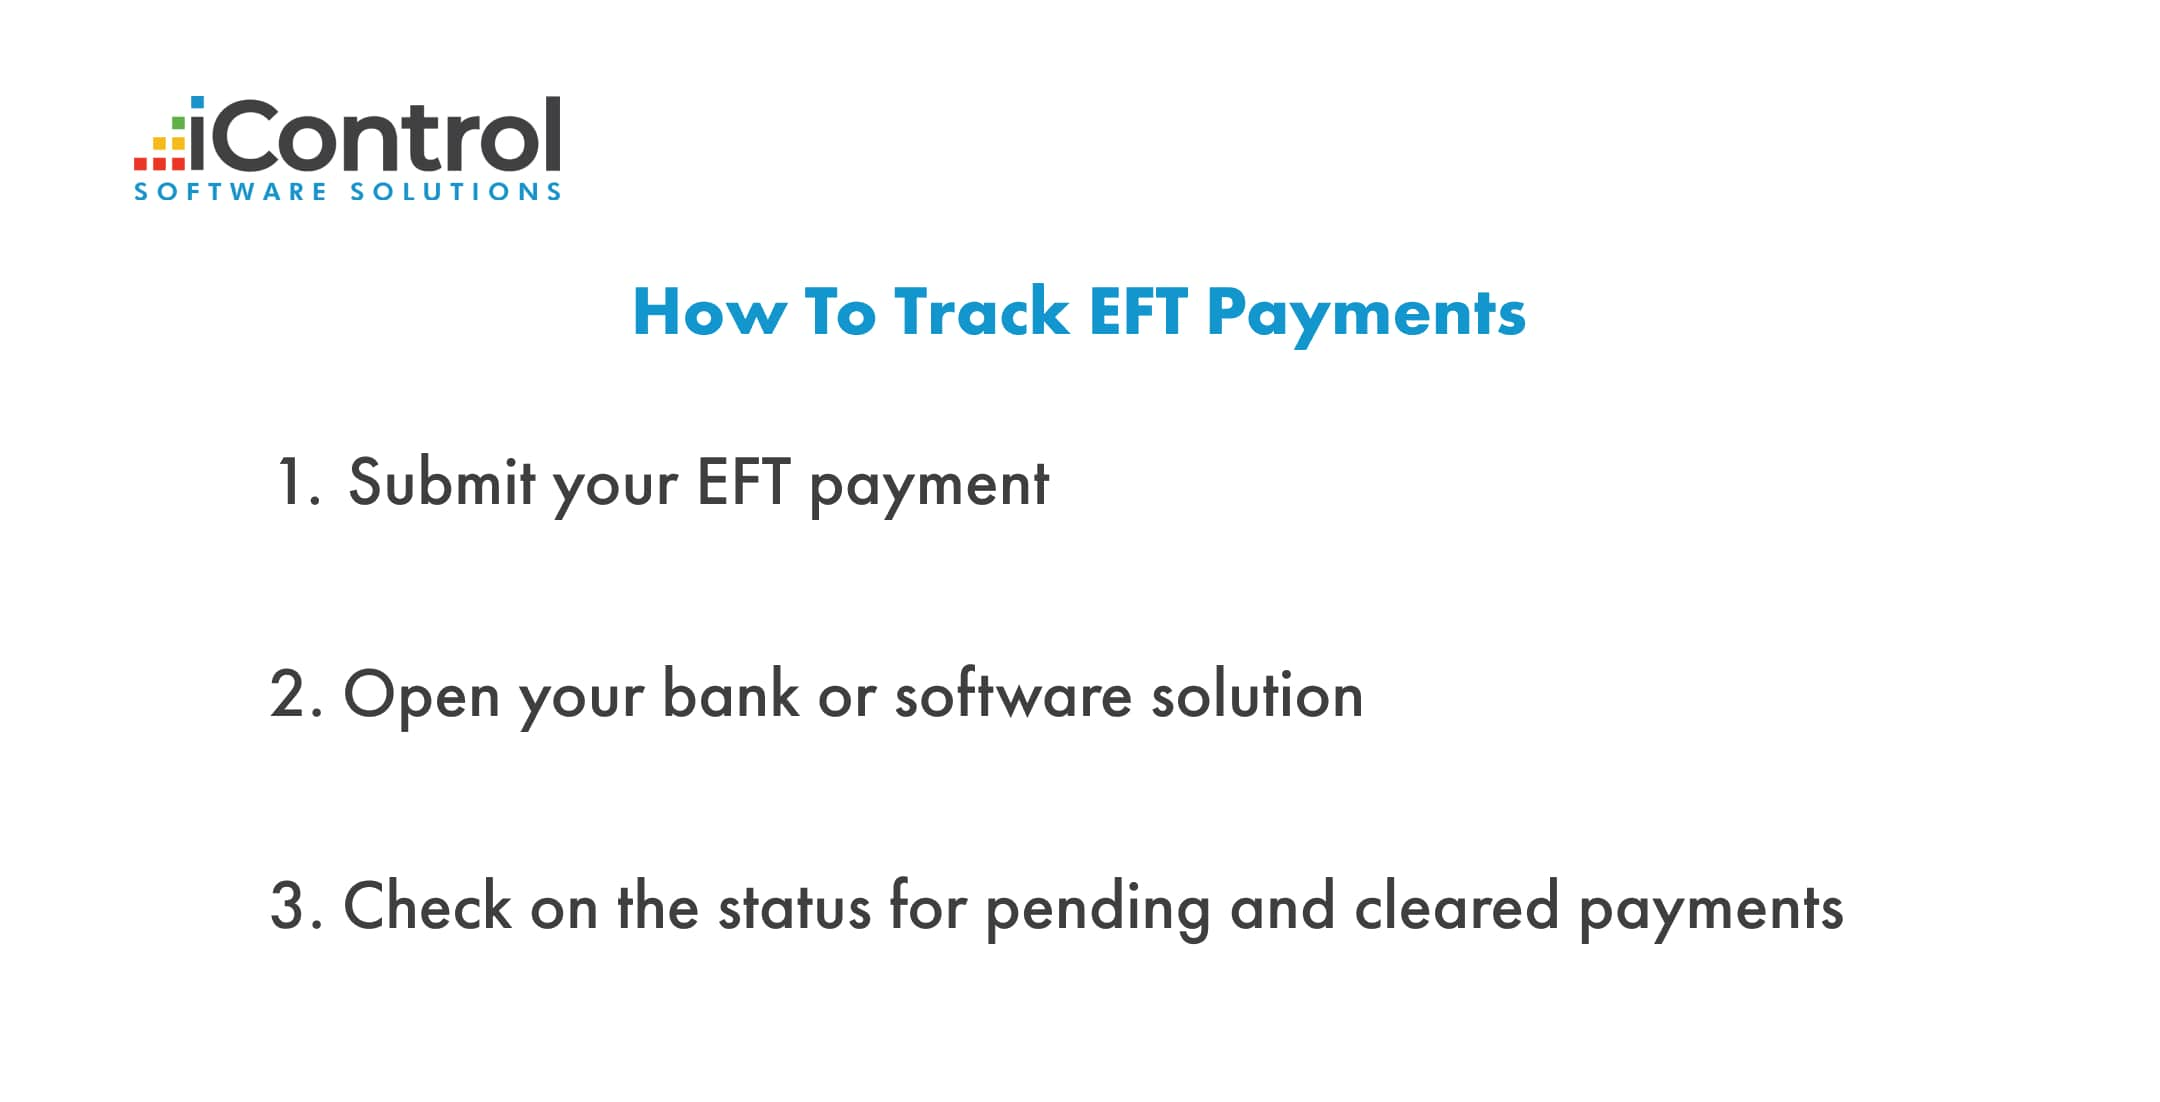 track EFT payments